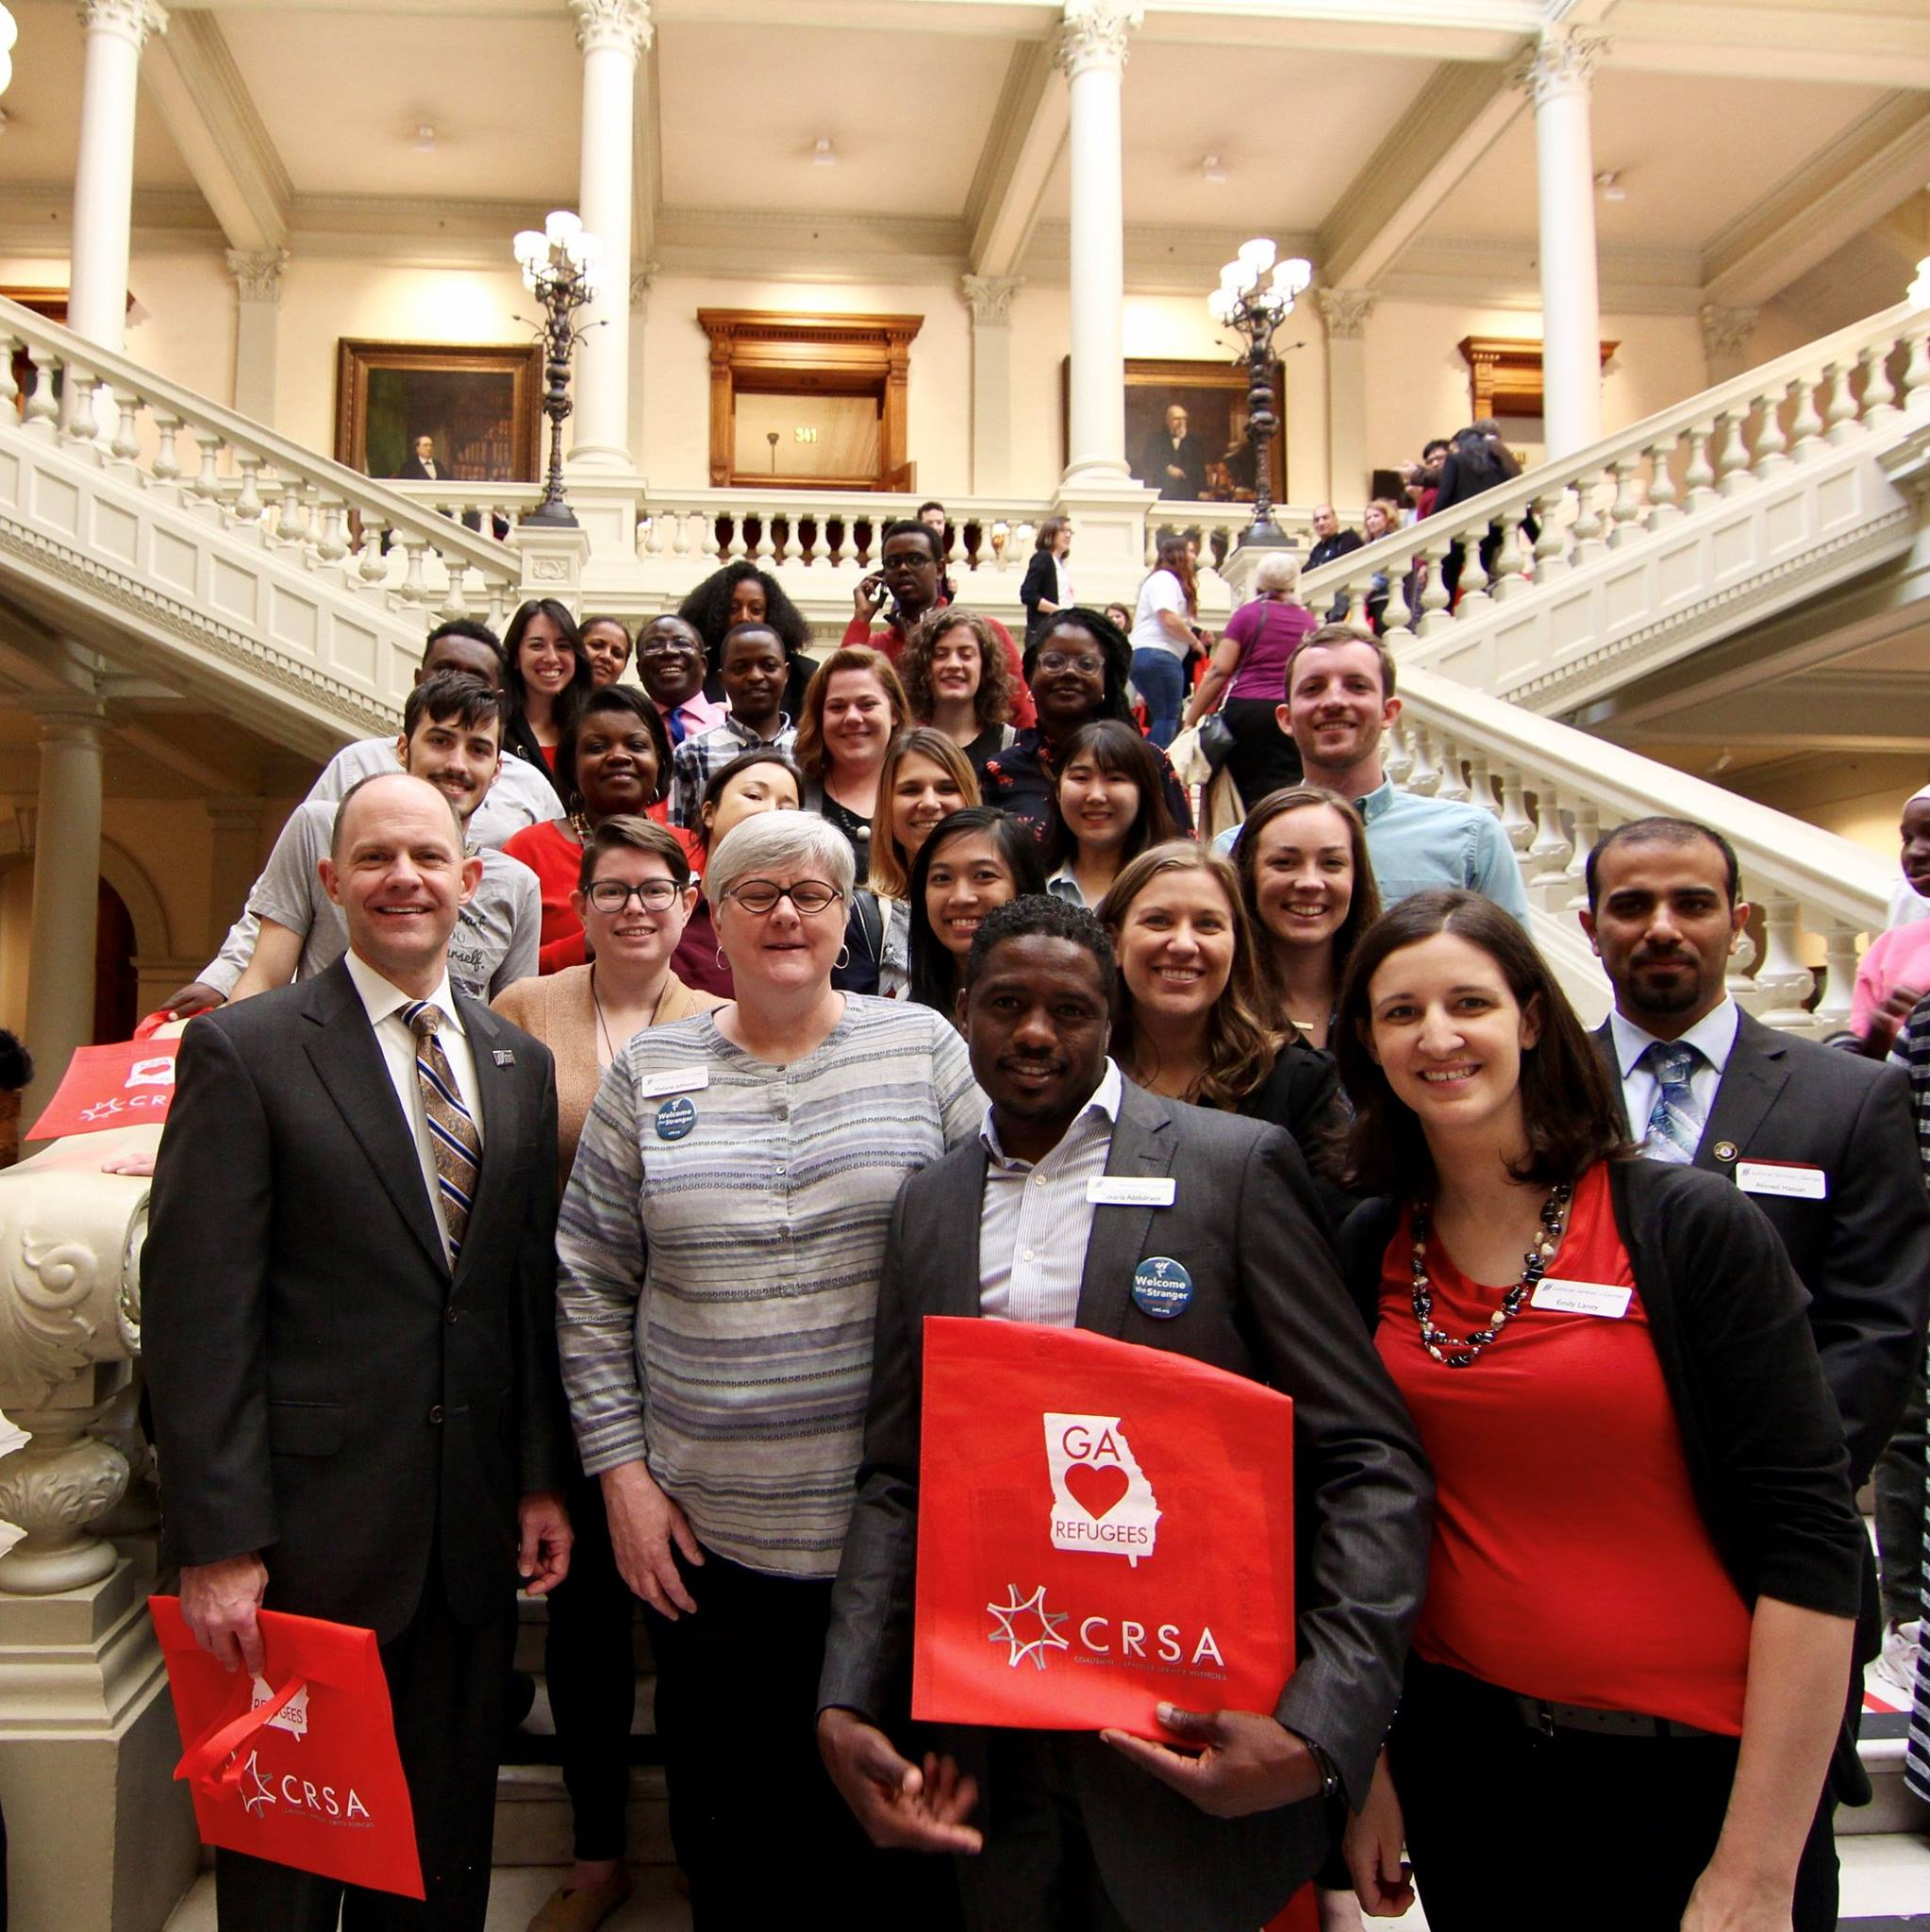 John with our refugee services staff and volunteers at the Capitol